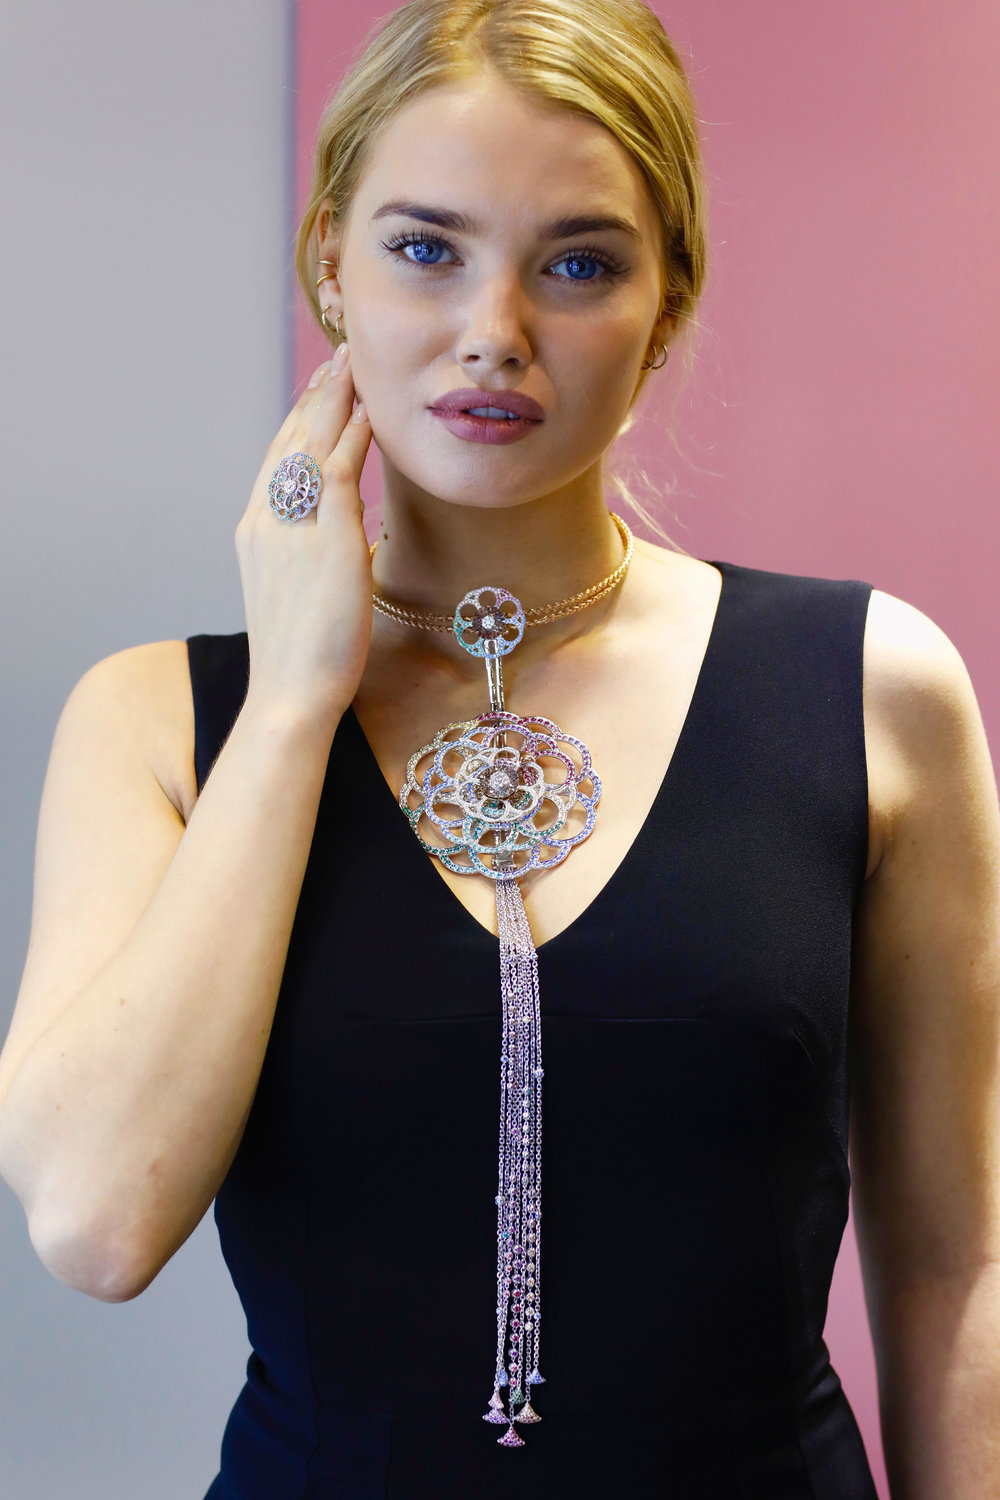 Soul Carousel spinning diamonds and  Swarovski® Created Stones statement  necklace by 'Coronet By Reena Ahluwalia'. Model: M ichelle Desideriussen.